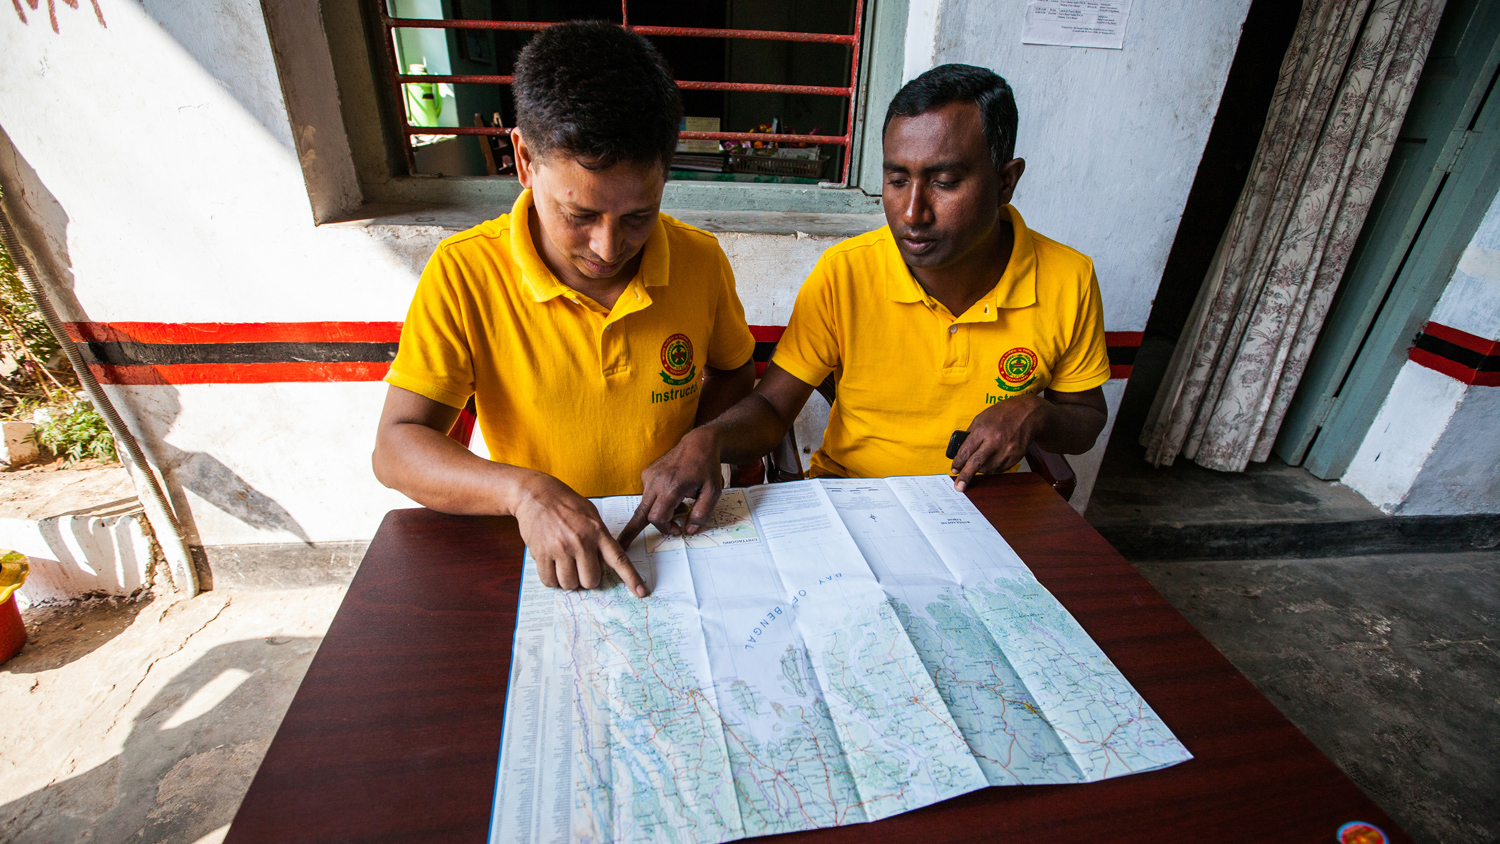 An RNLI instructor and a flood rescue trainee look at a map in Bangladesh